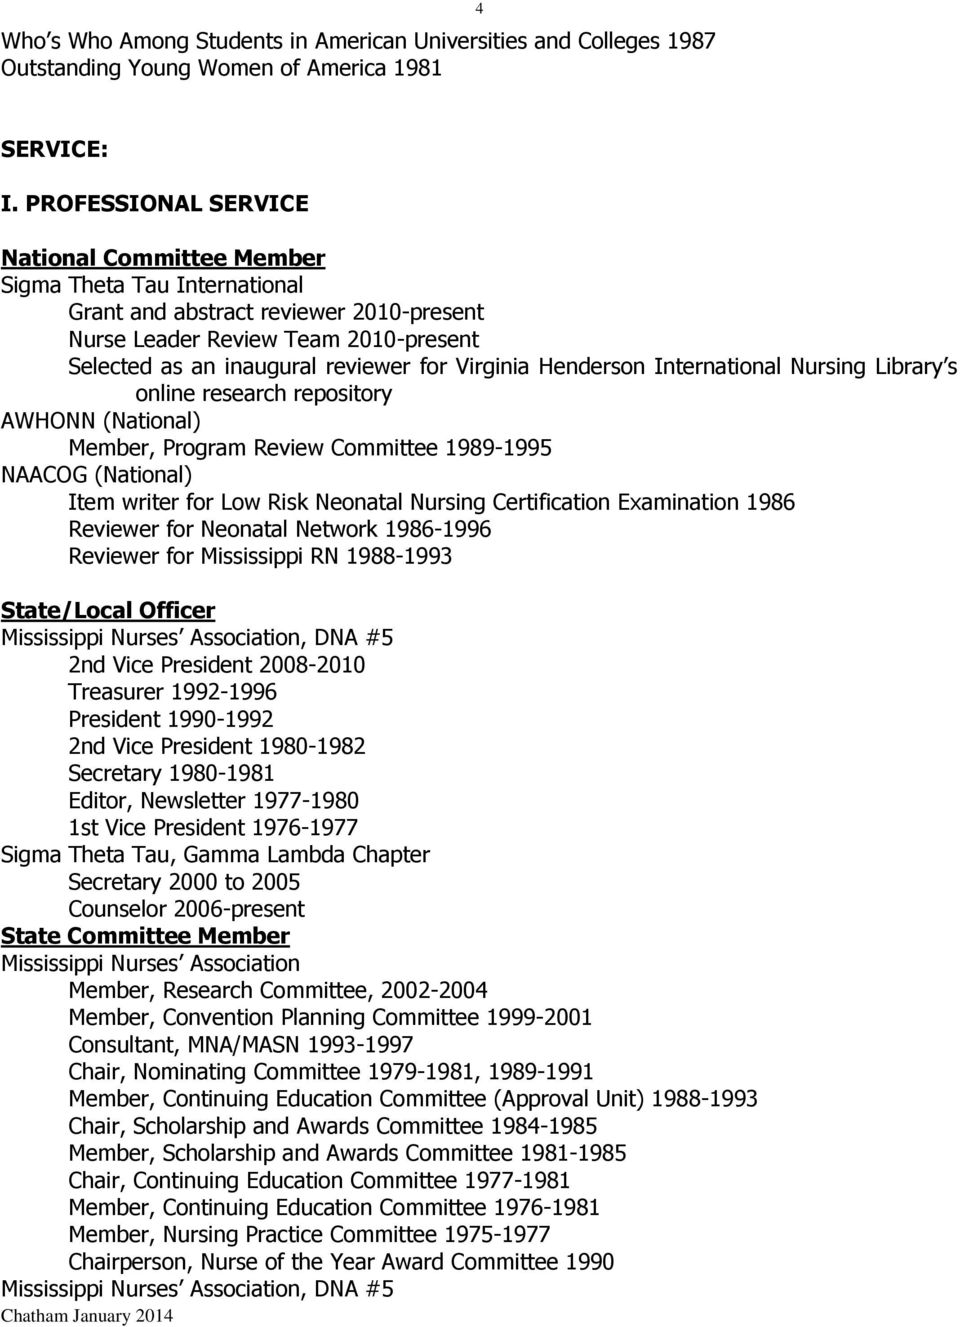 Virginia Henderson International Nursing Library s online research repository AWHONN (National) Member, Program Review Committee 1989-1995 NAACOG (National) Item writer for Low Risk Neonatal Nursing